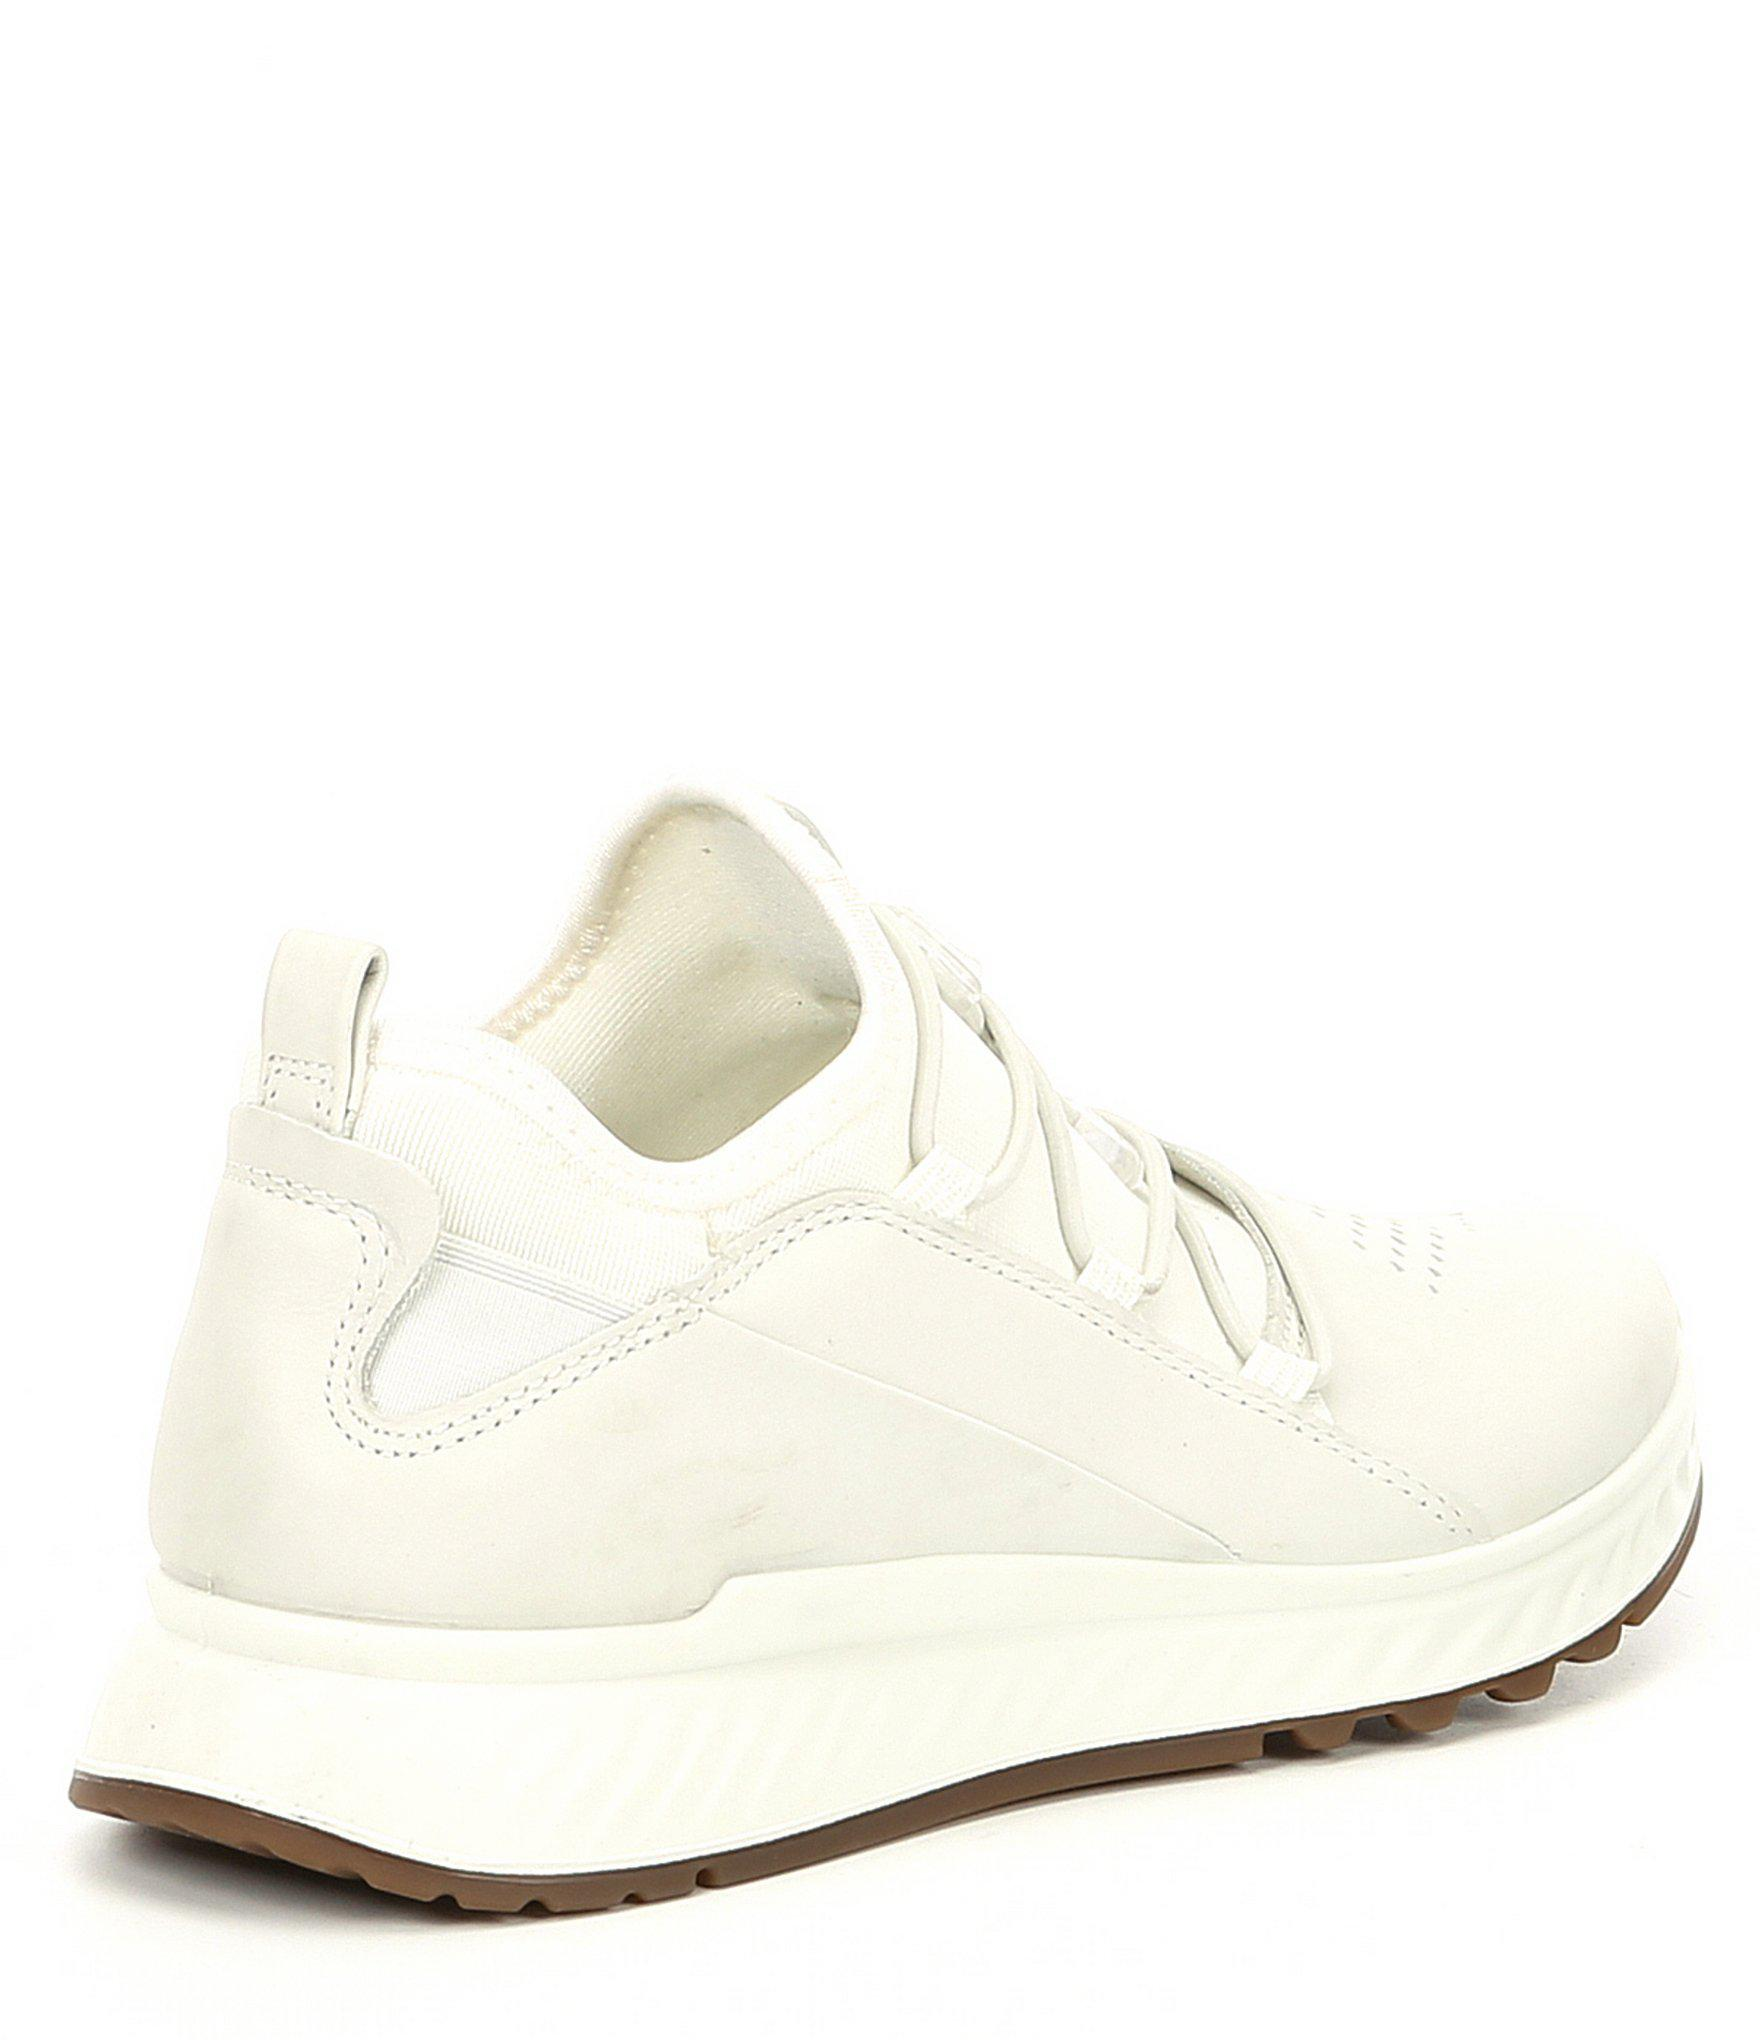 6a07366f Ecco White Women's St1 Toggle Leather And Neoprene Sneakers